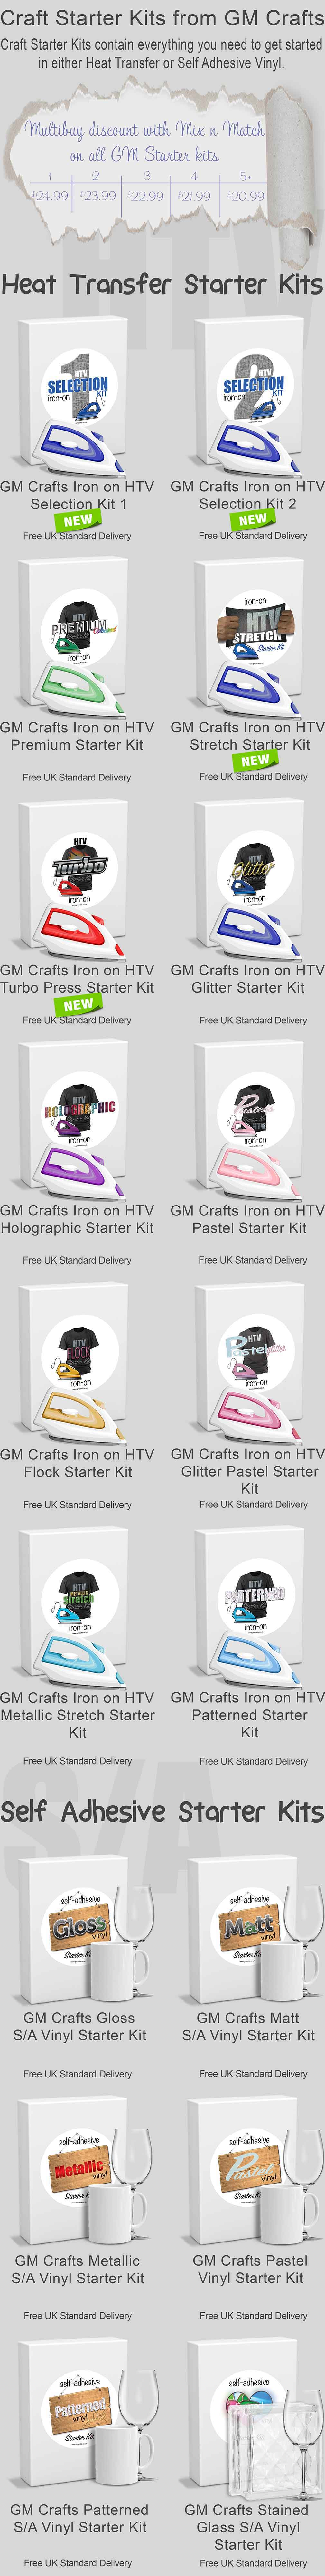 Mobile-Starter-Kits-Page-Oct-19